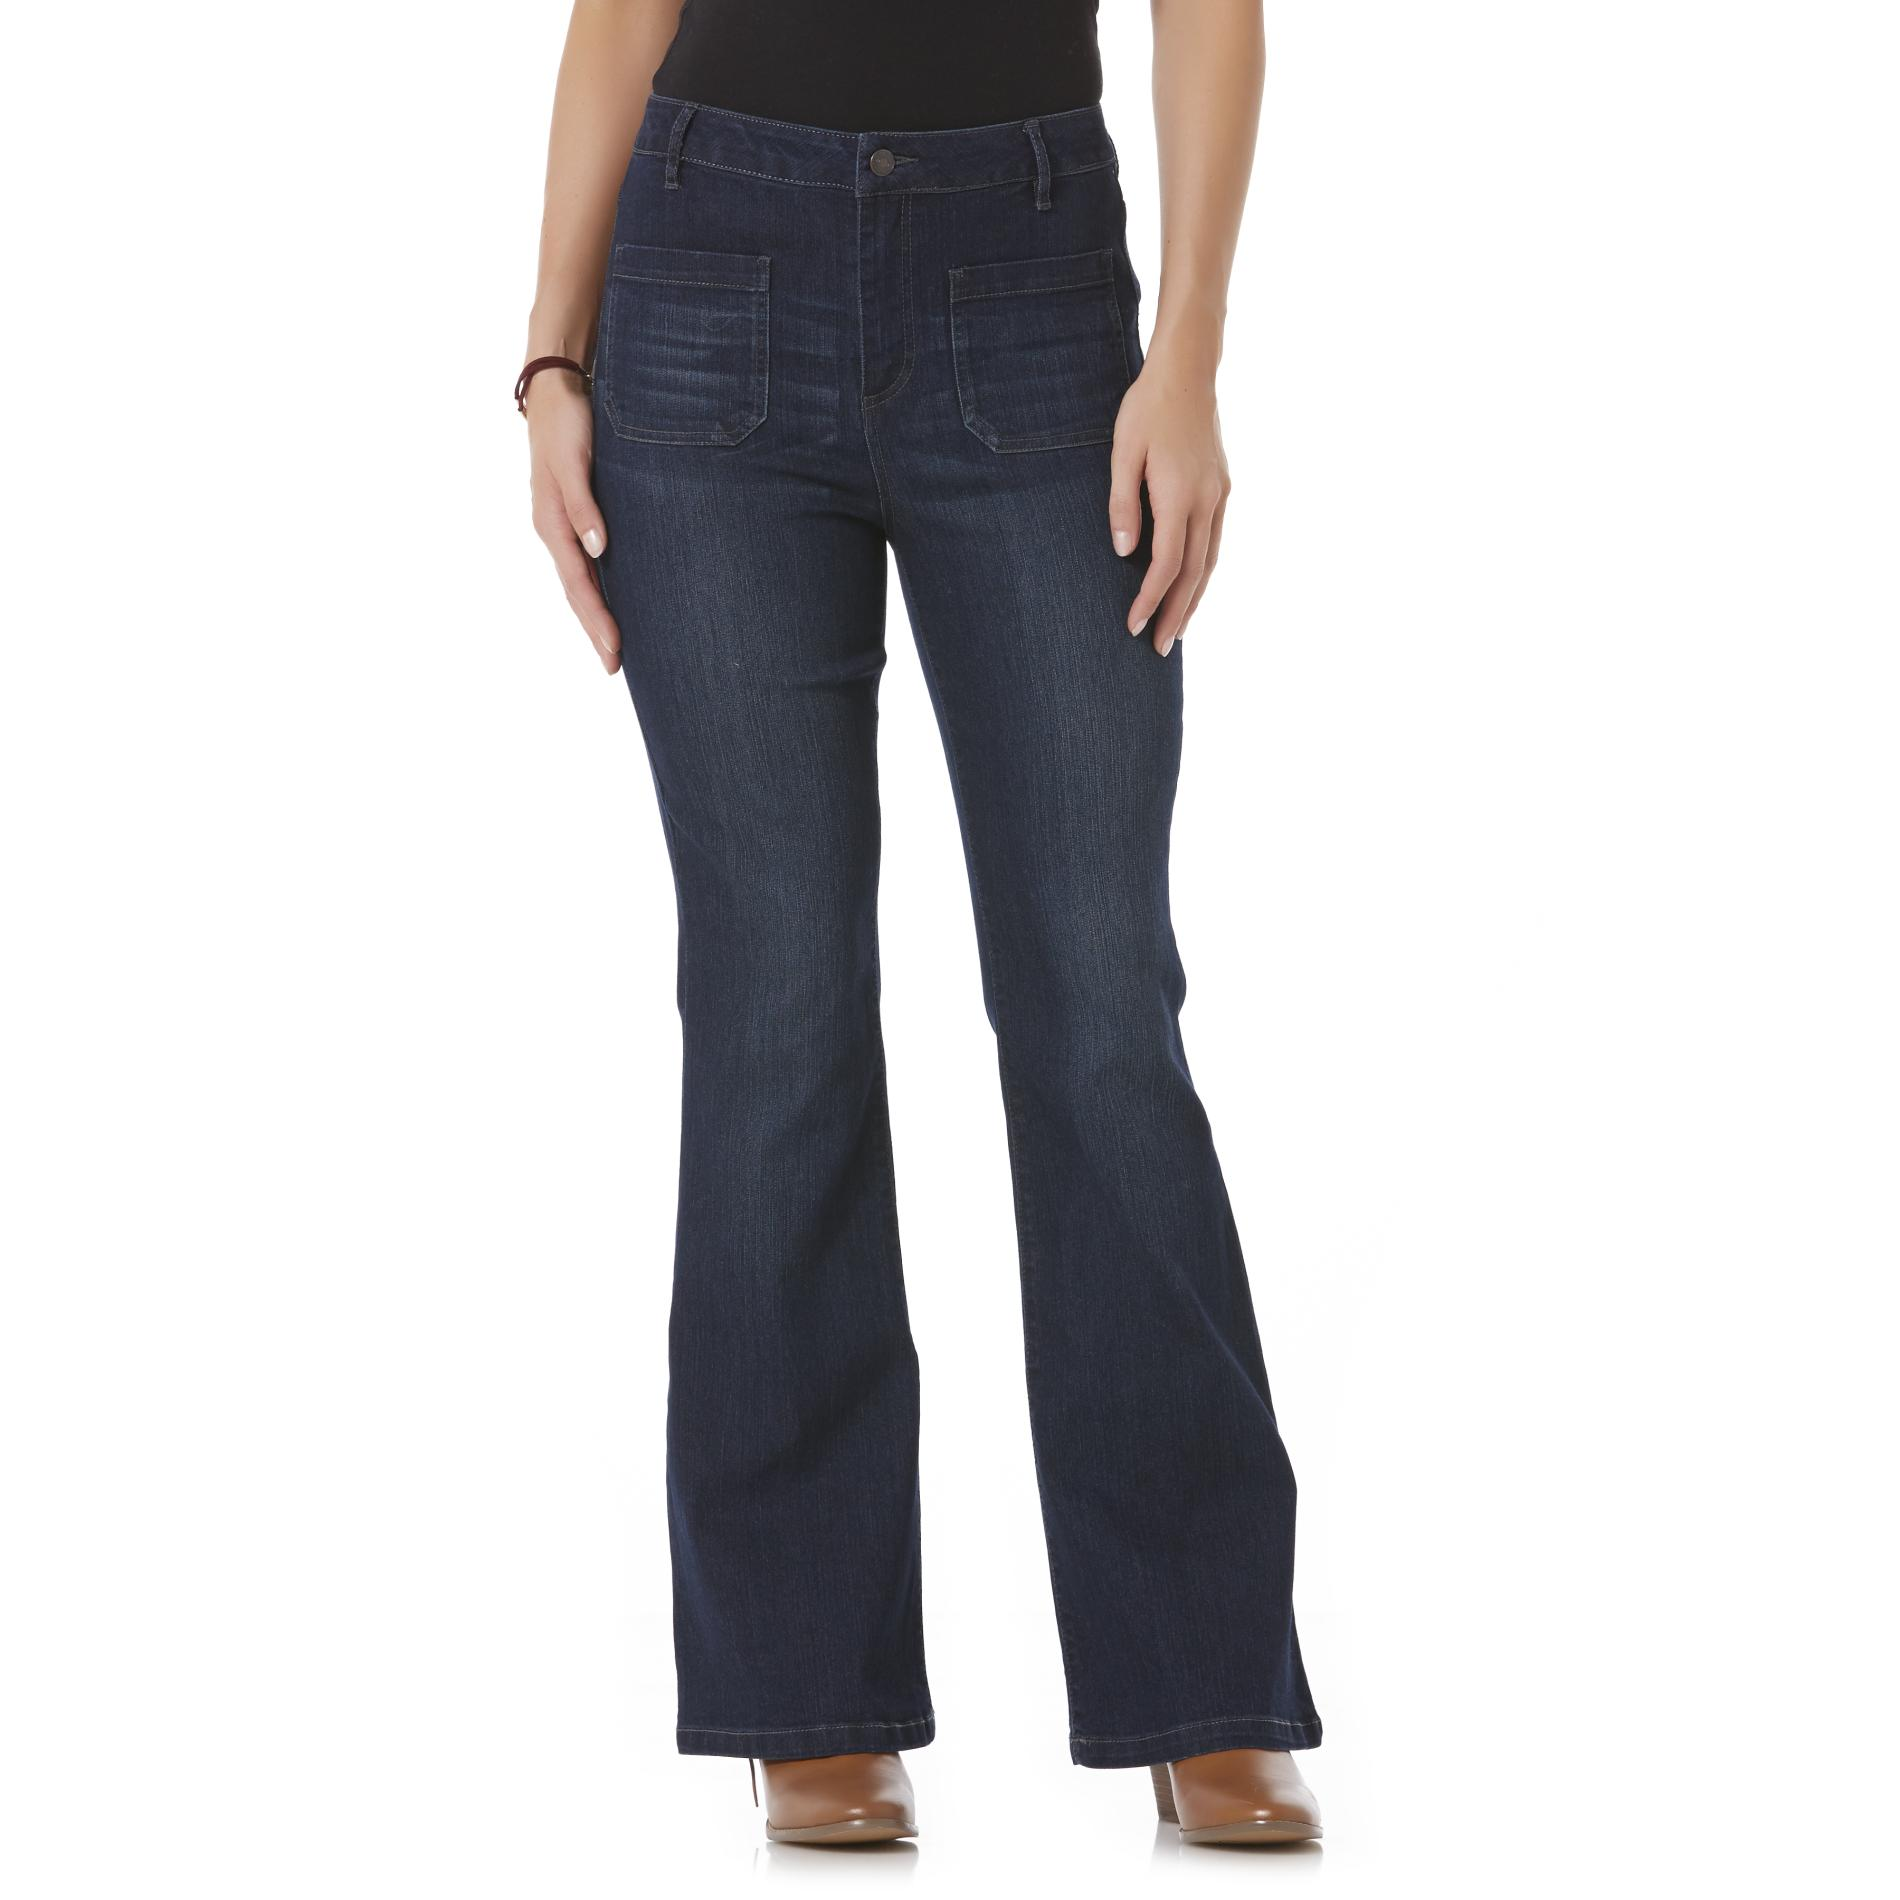 Canyon River Blues Women' Flare Jeans